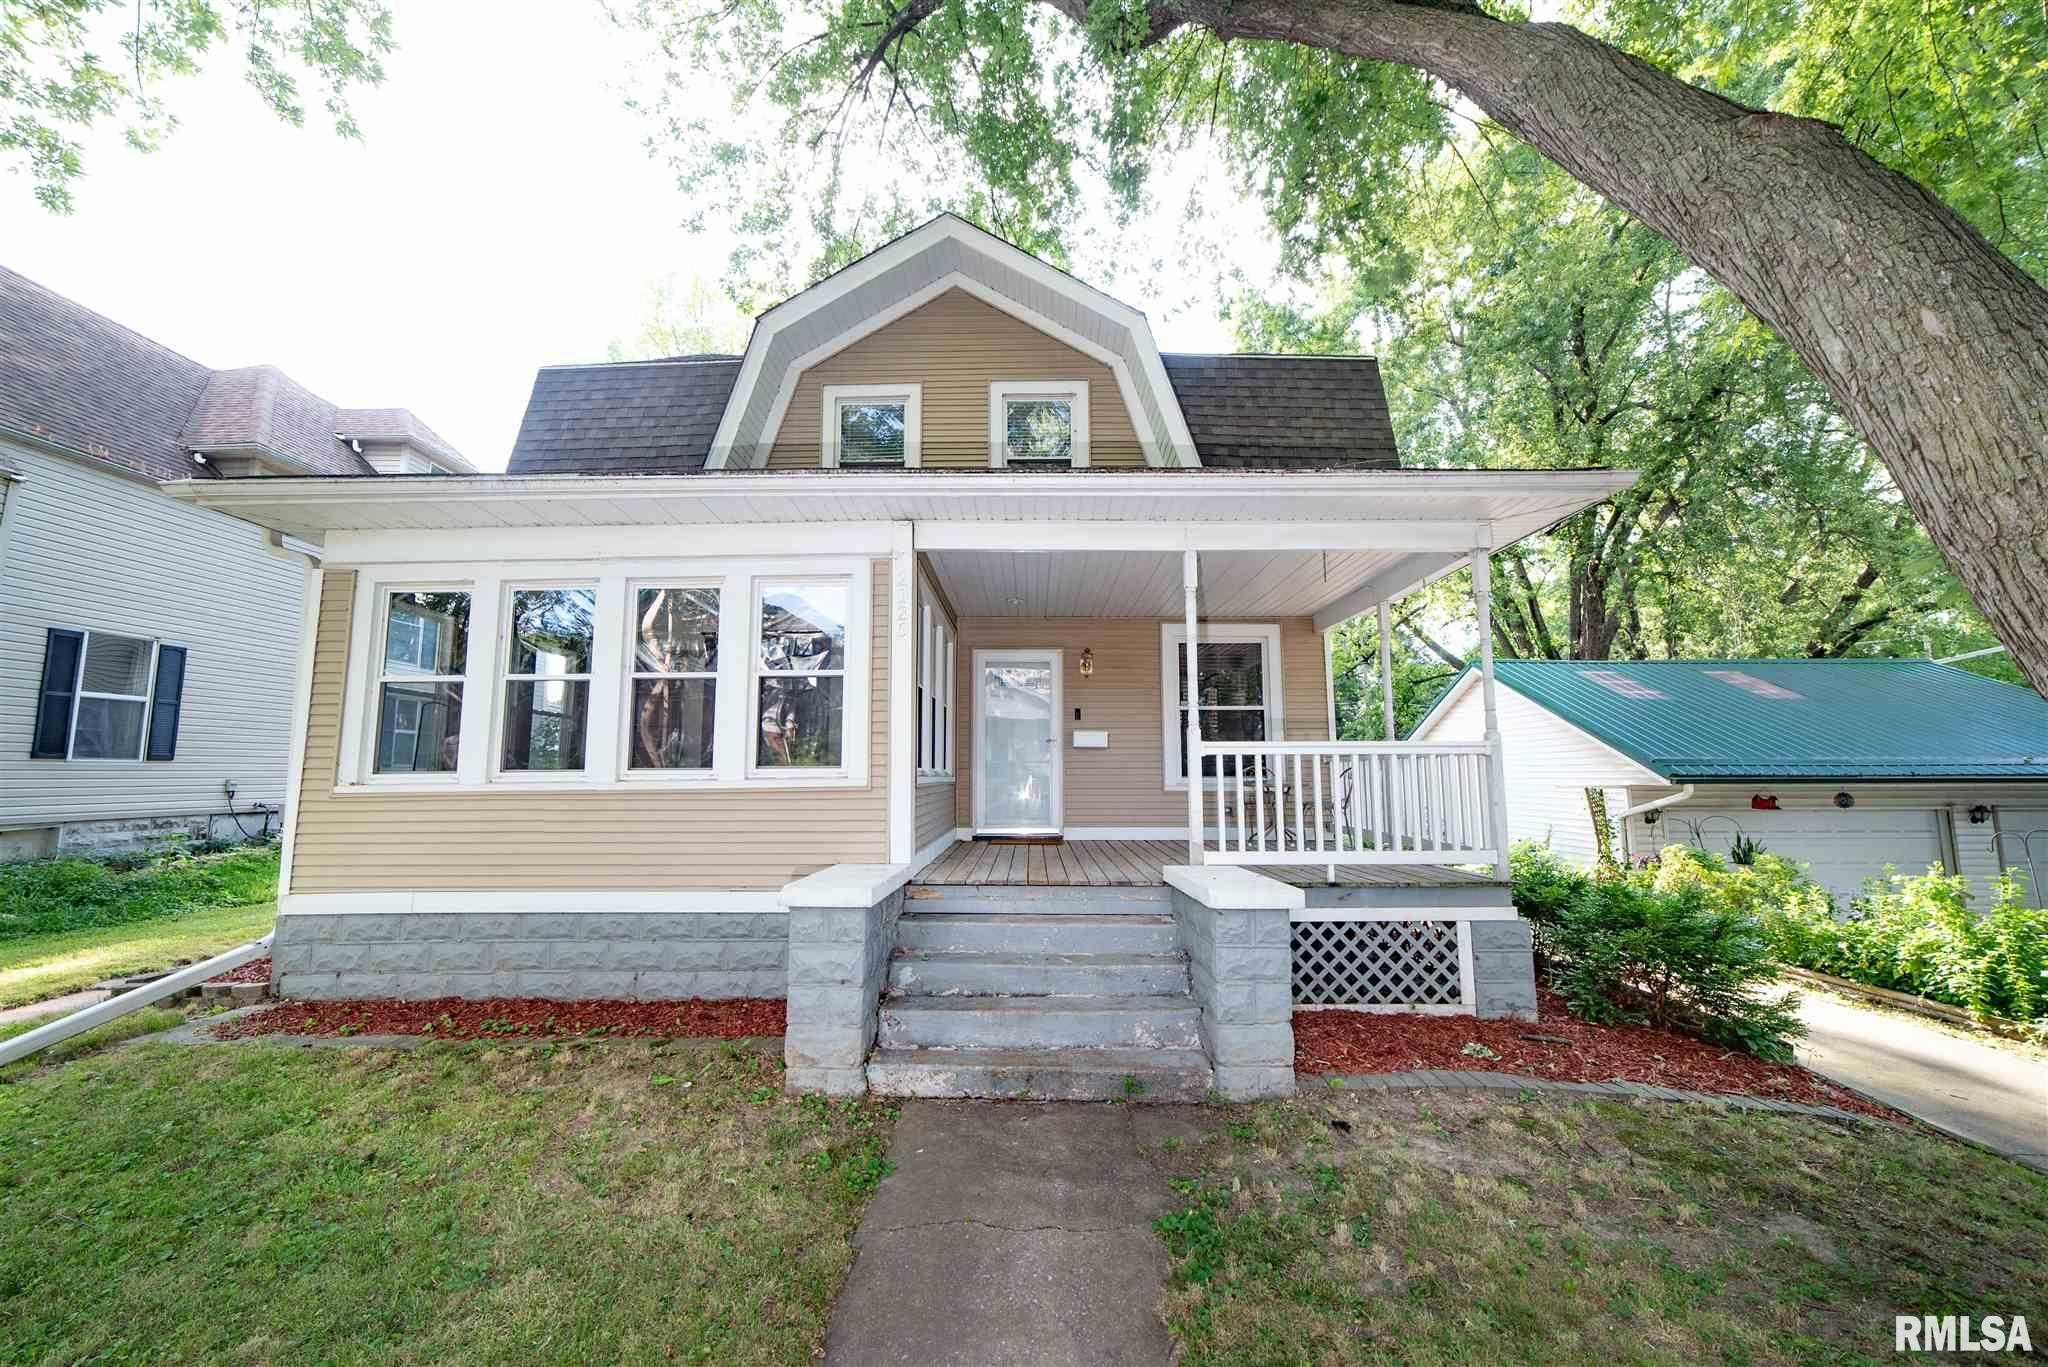 $185,000 - 3Br/2Ba -  for Sale in Ballord, Davenport